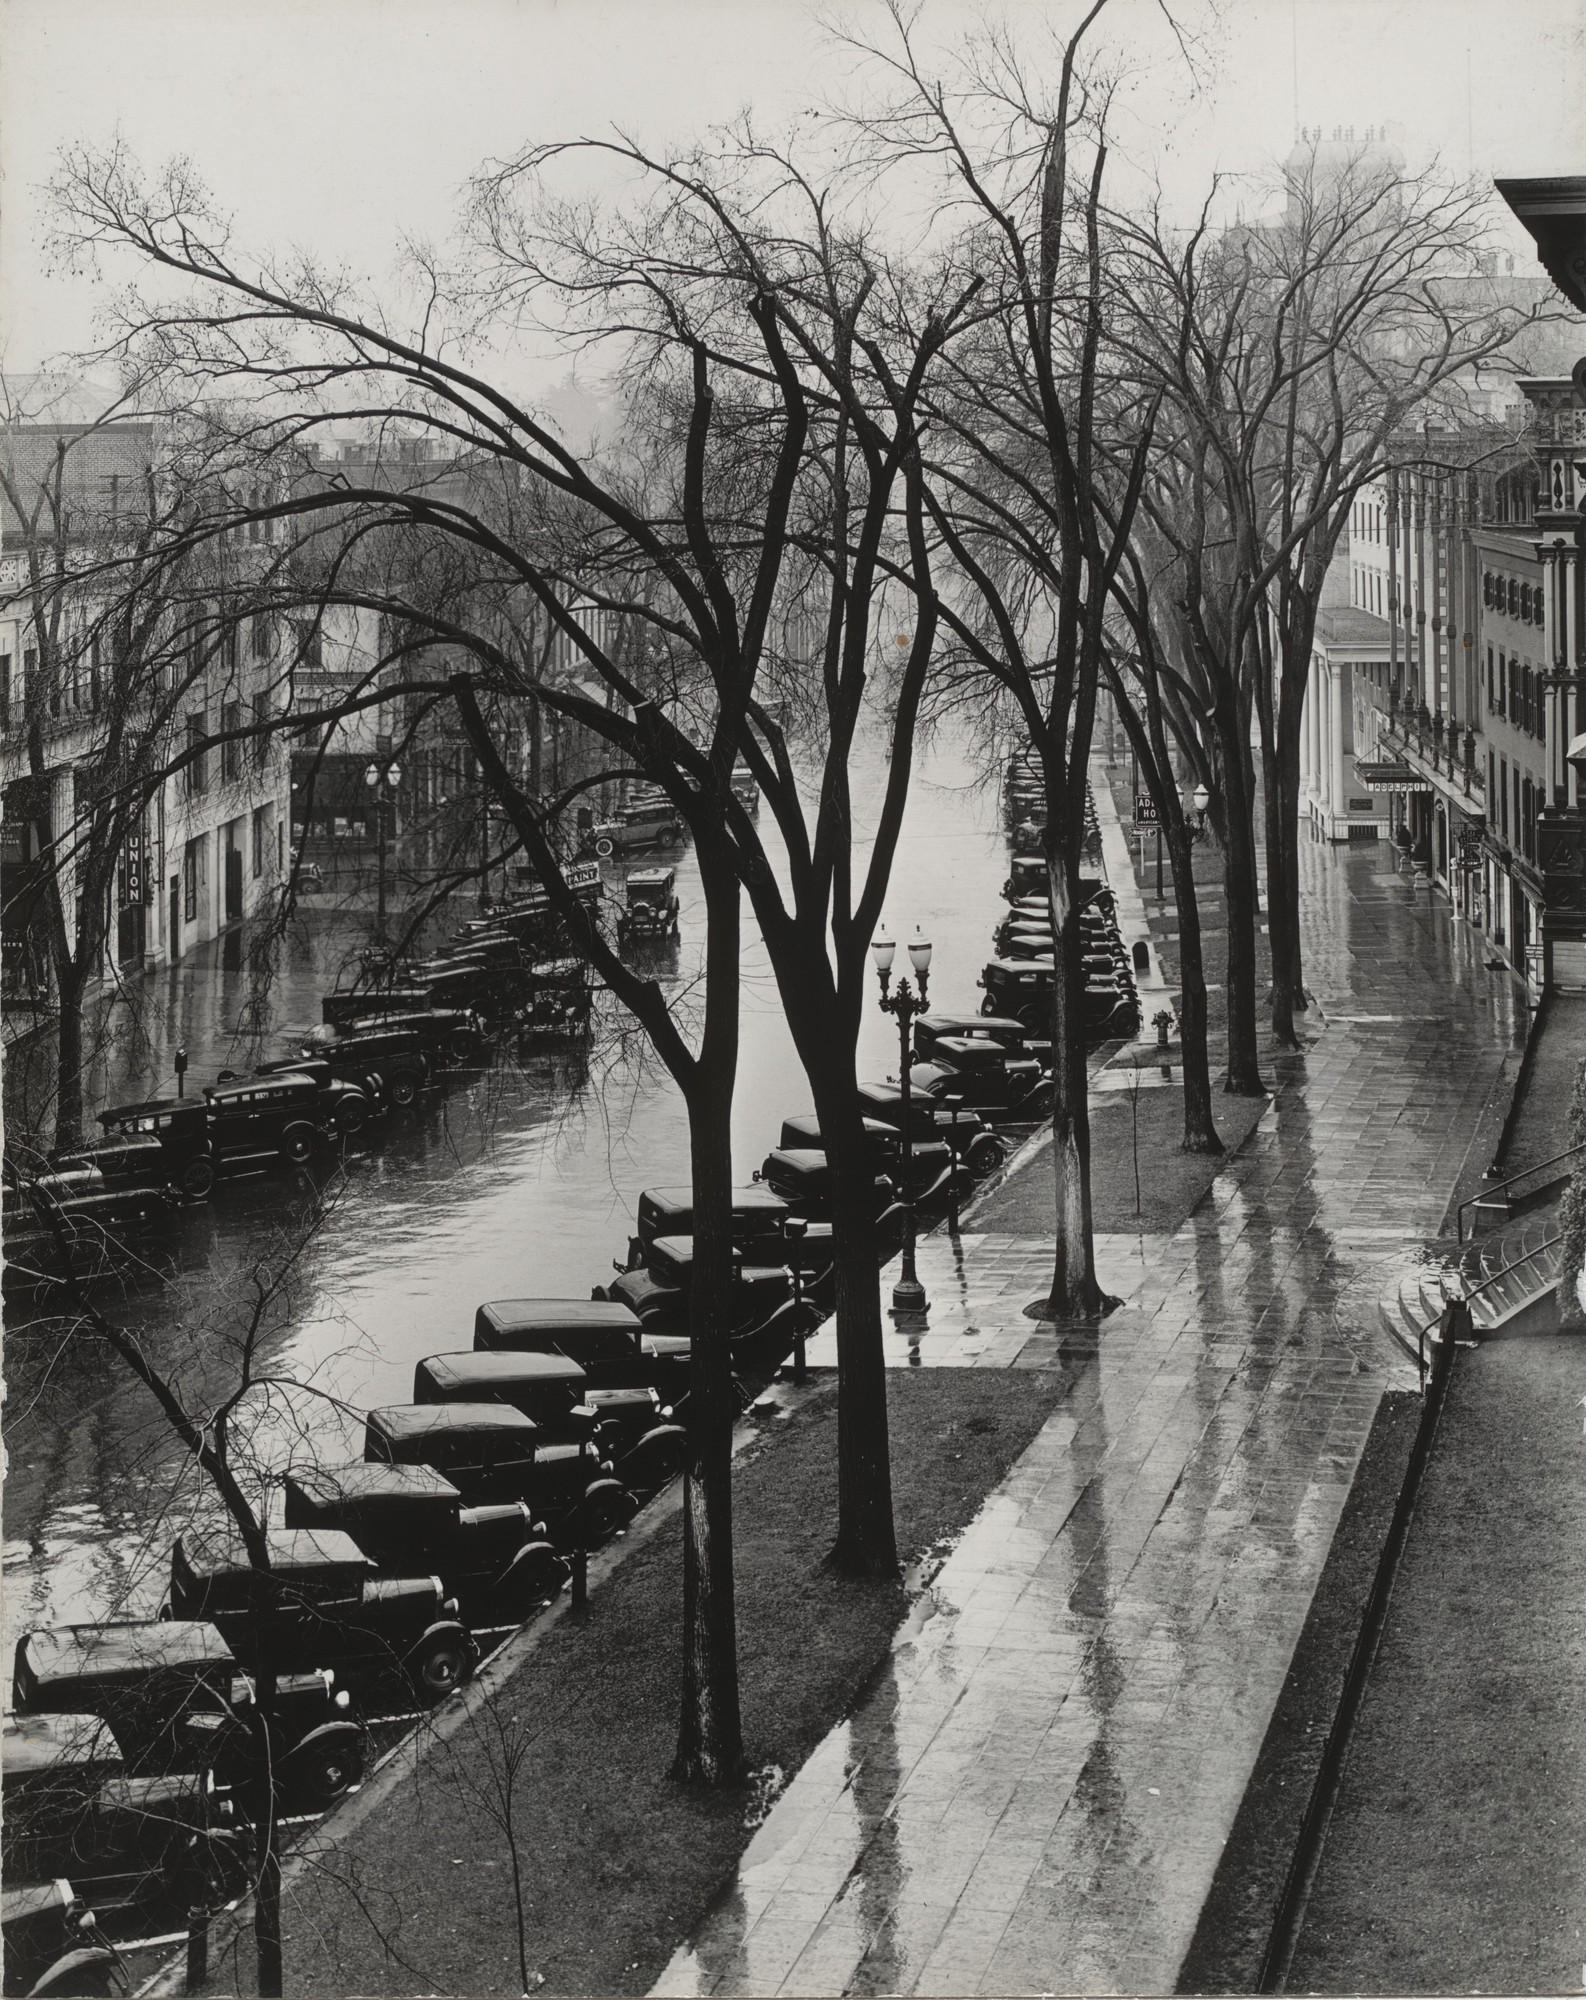 Walker Evans. Main Street, Saratoga Springs, New York. 1931